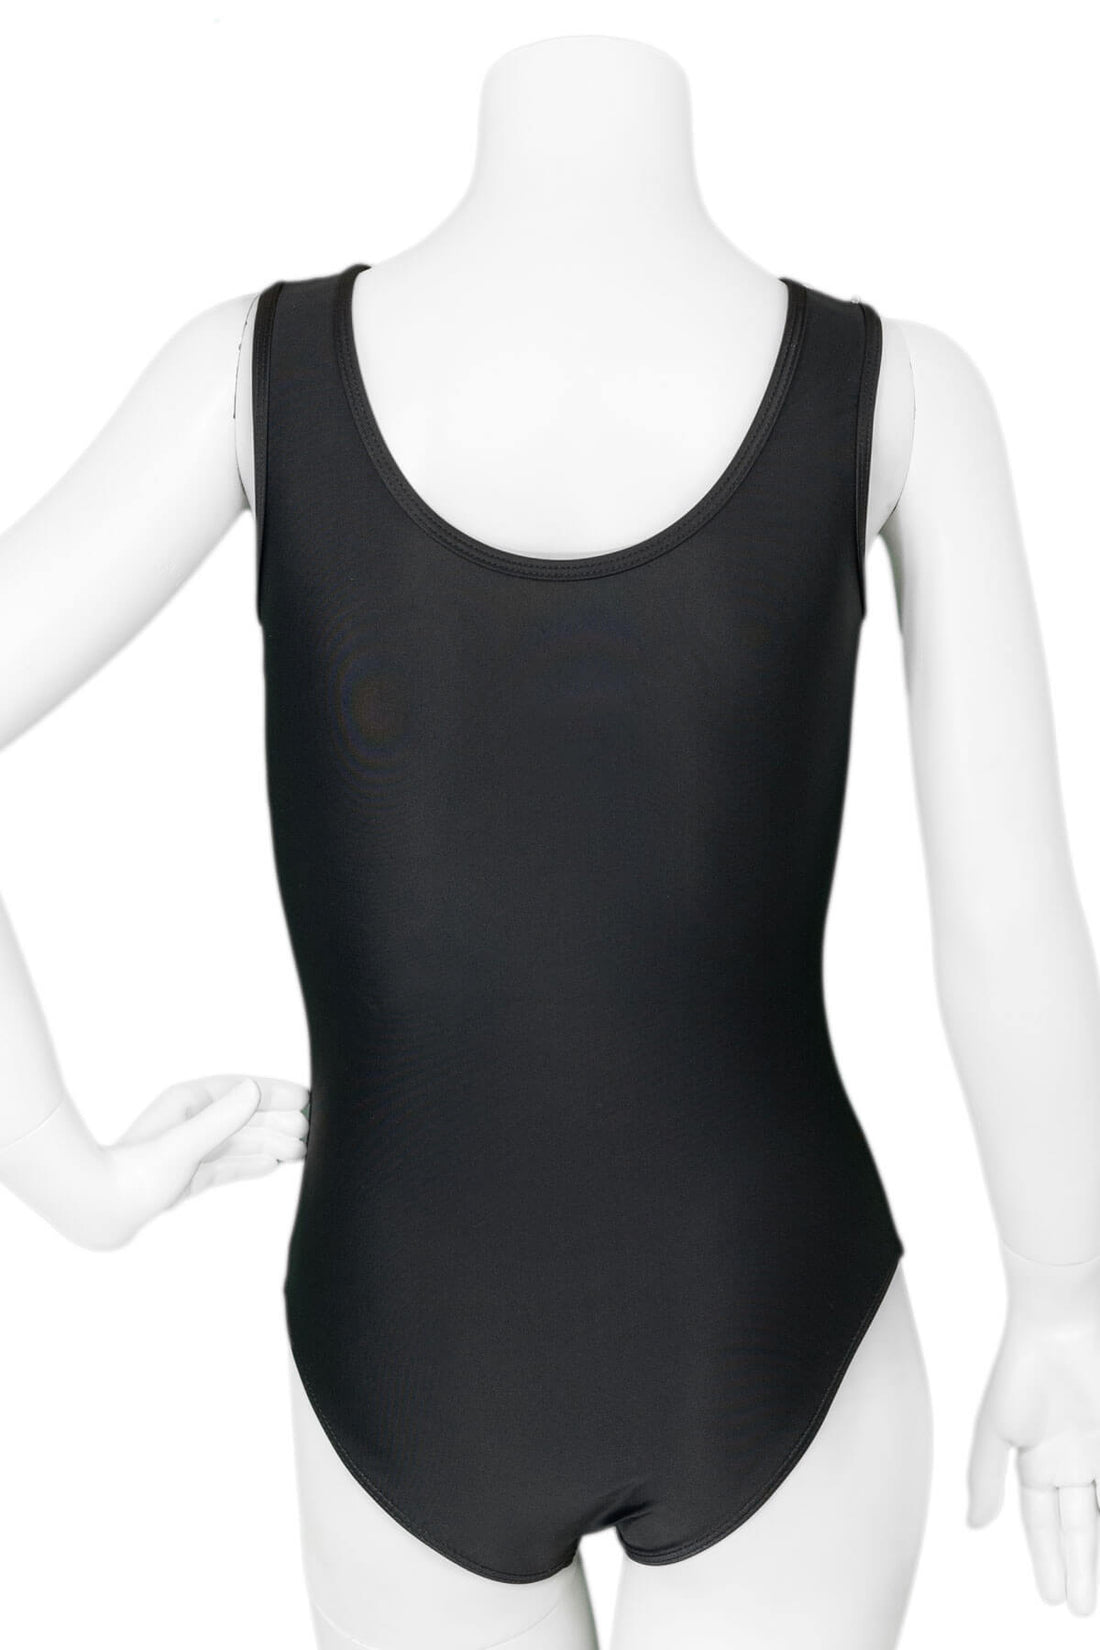 Flashback Star Noir Leotard